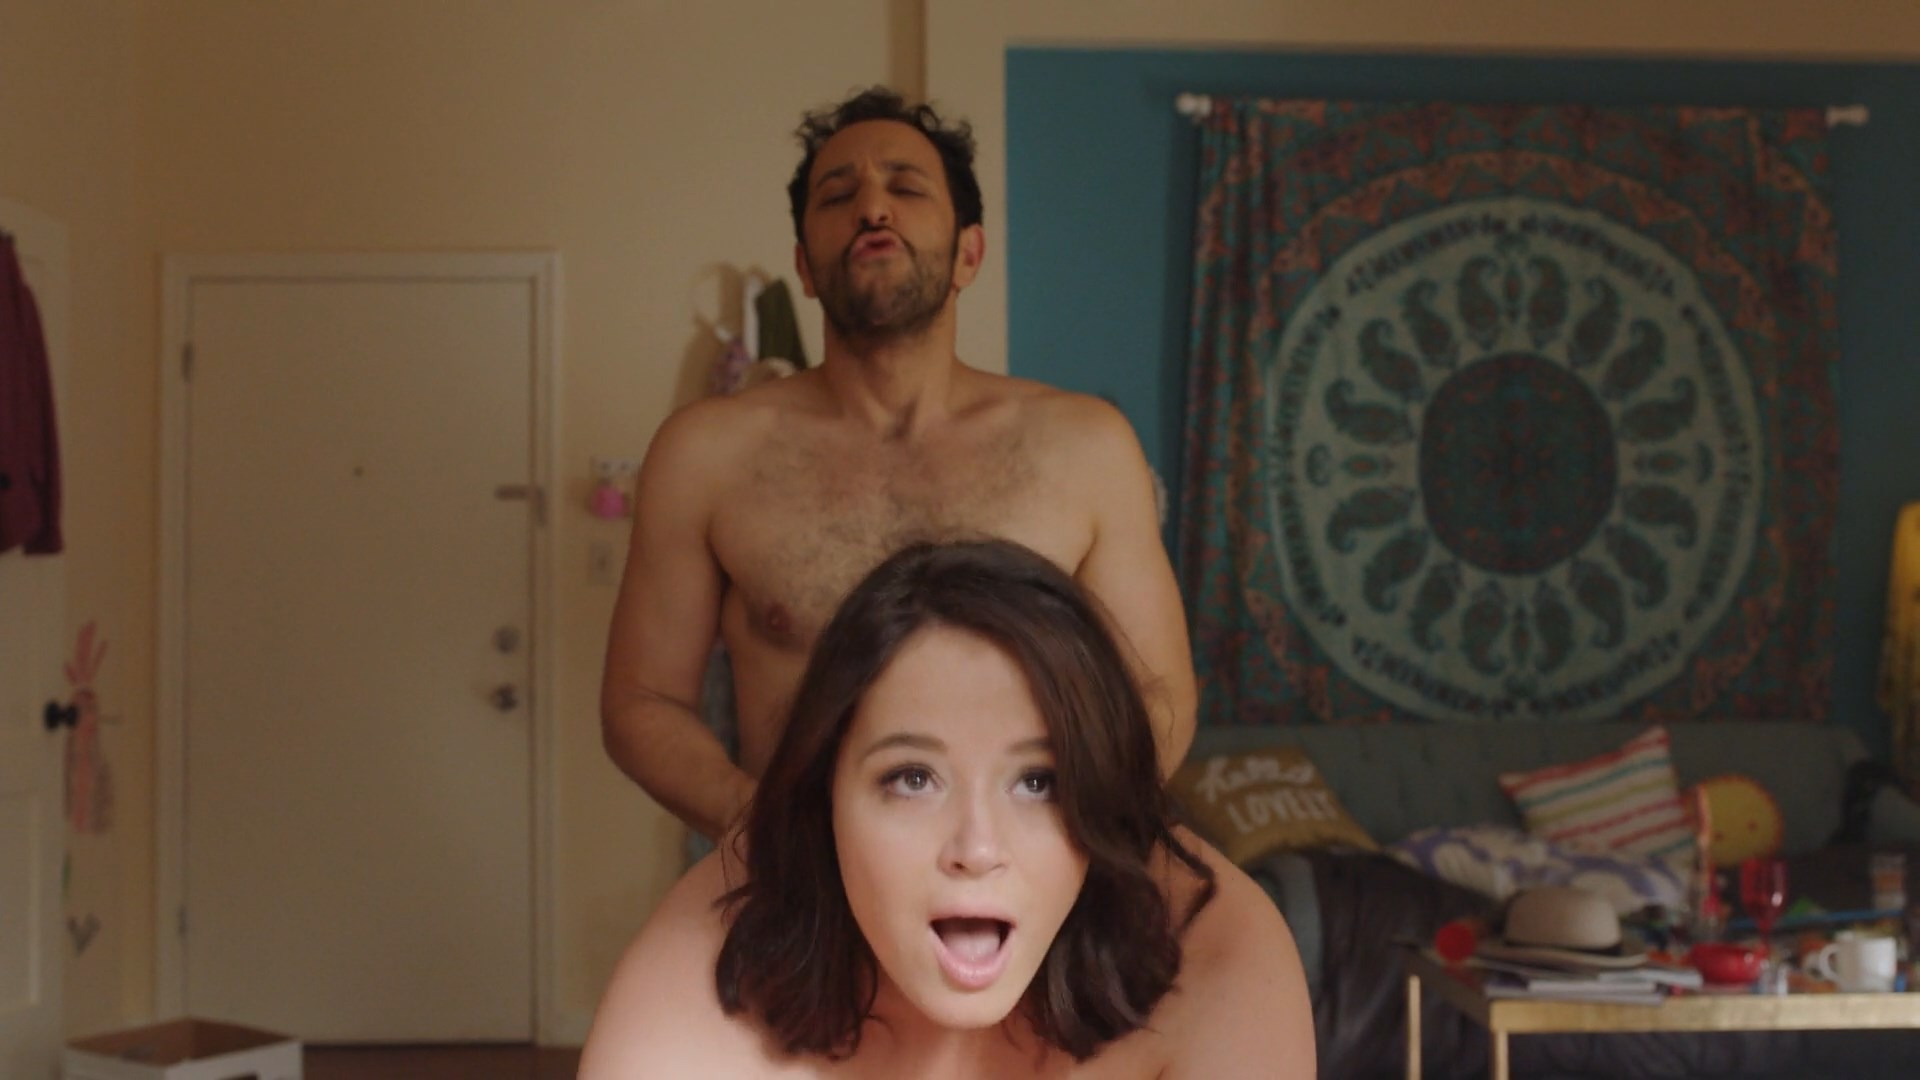 Nude kether donohue 46 Nude